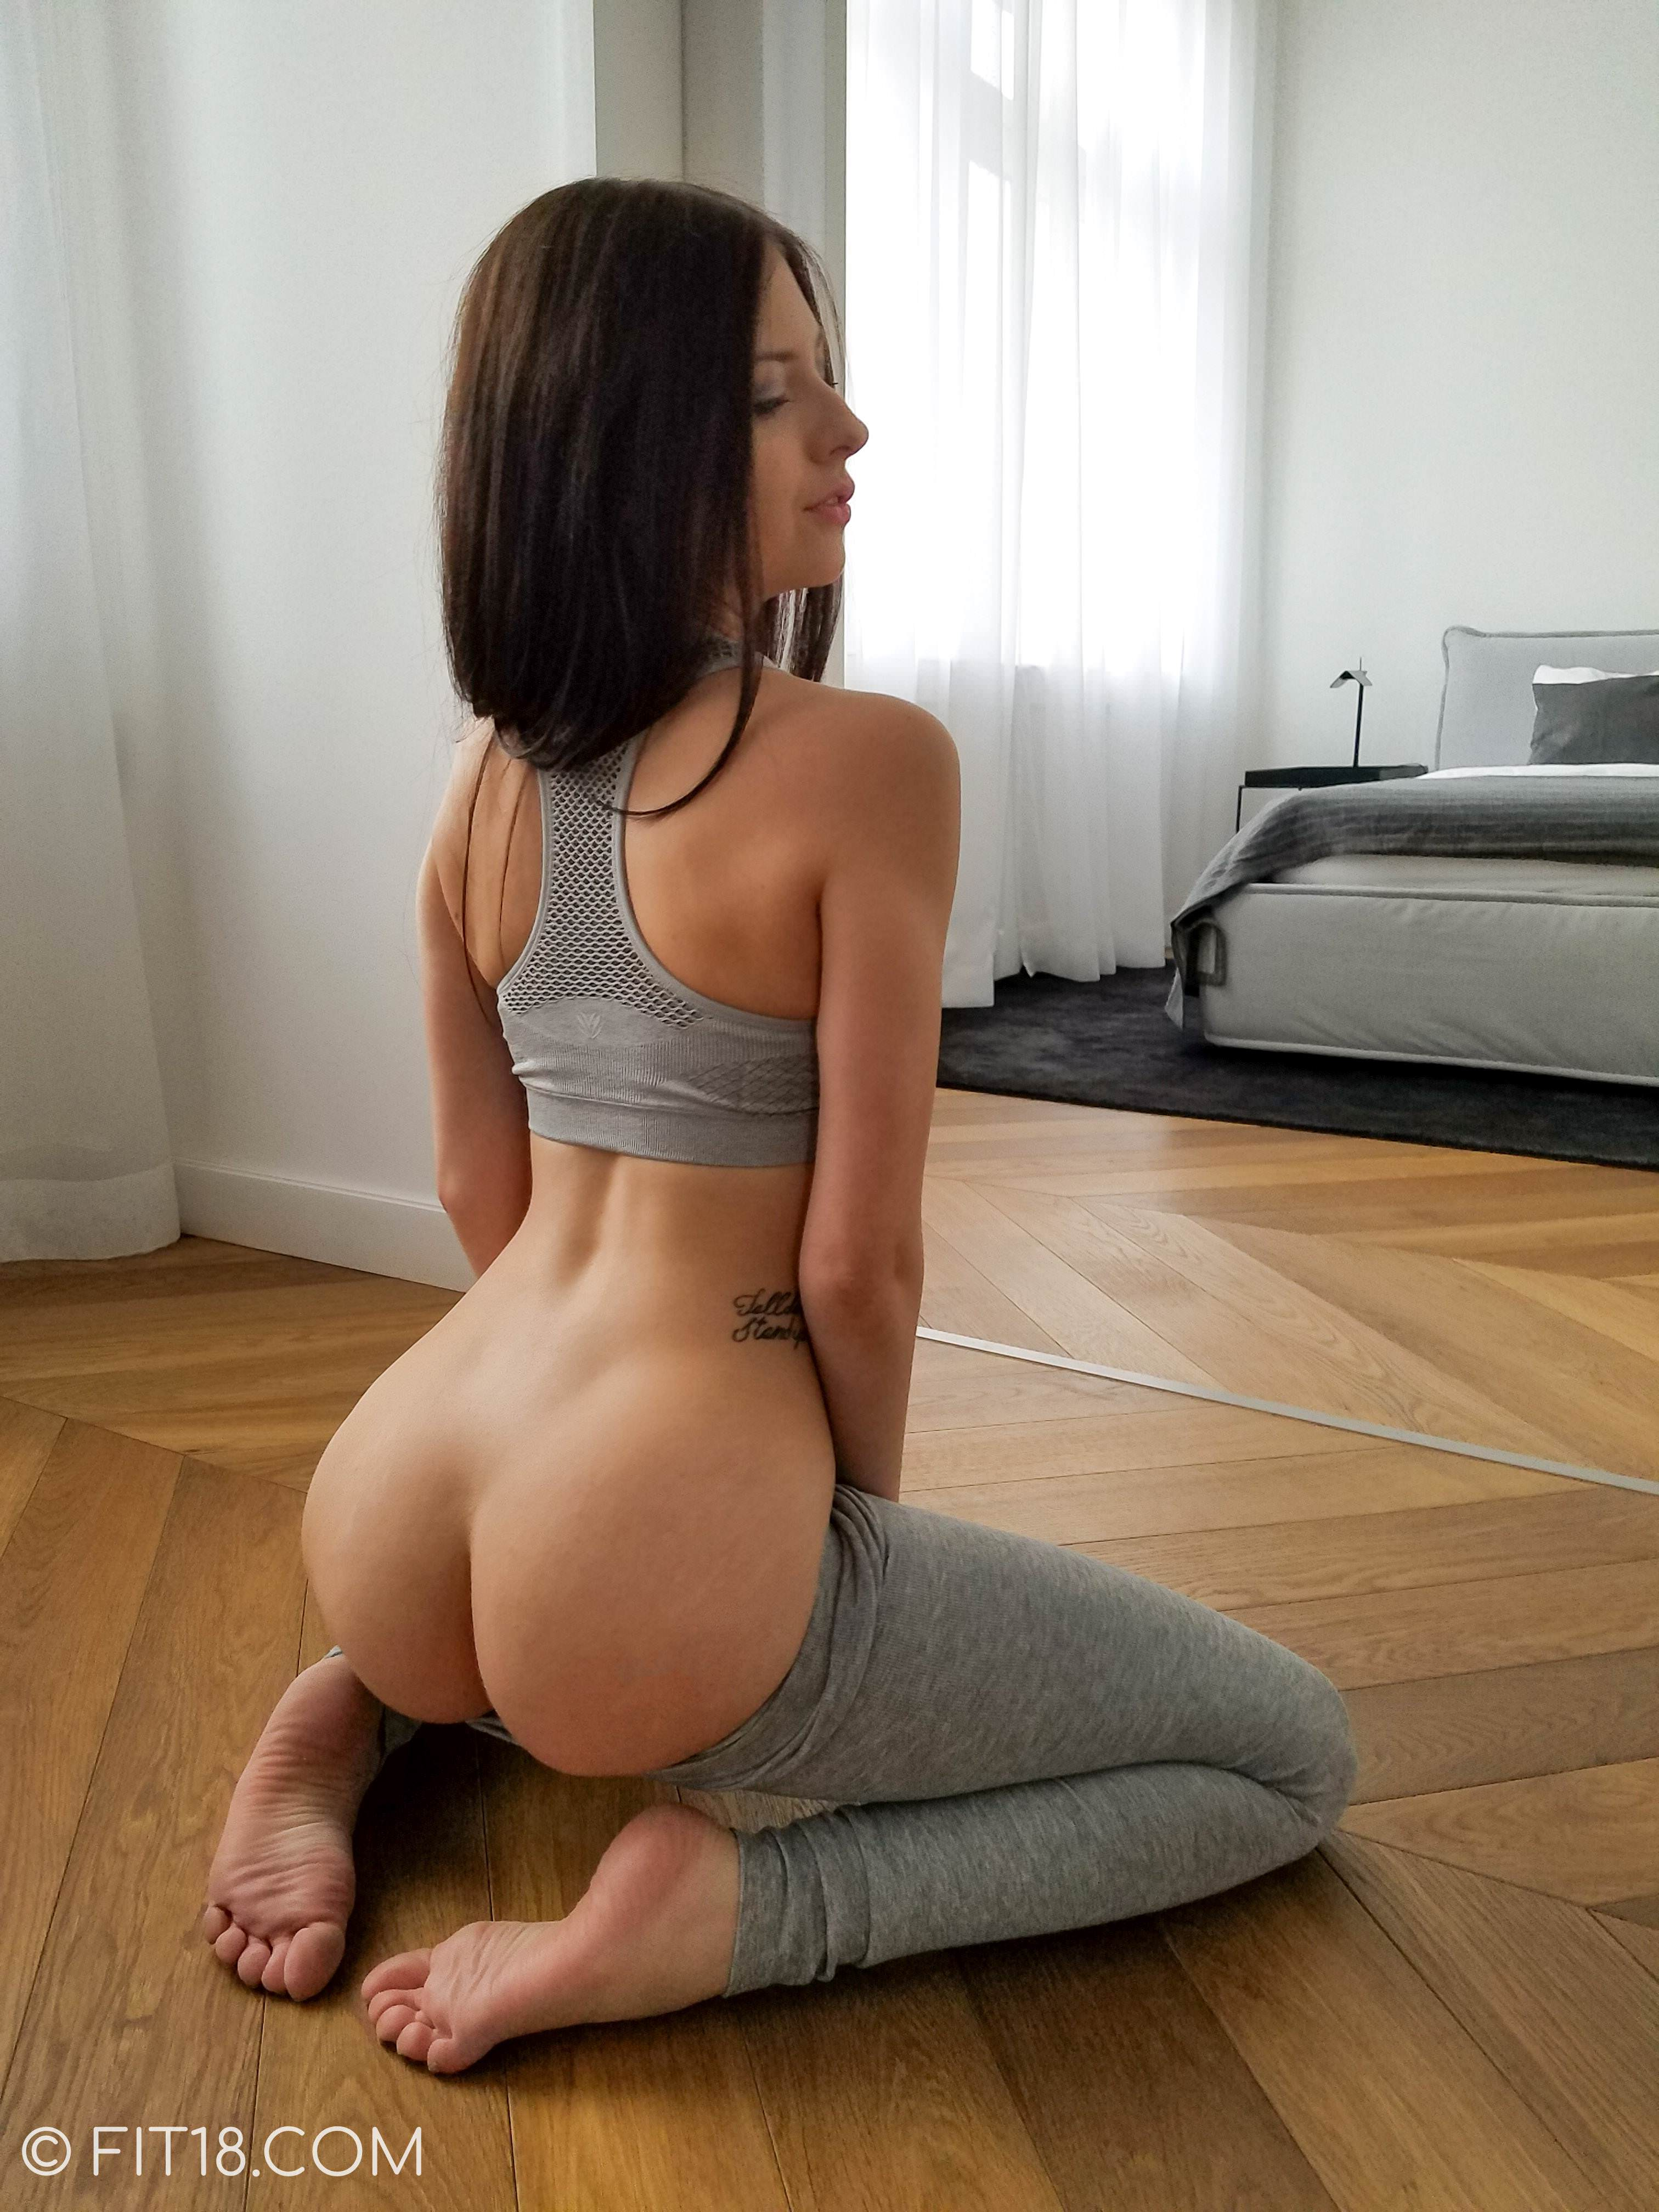 Teen pictures pussy free barely legal